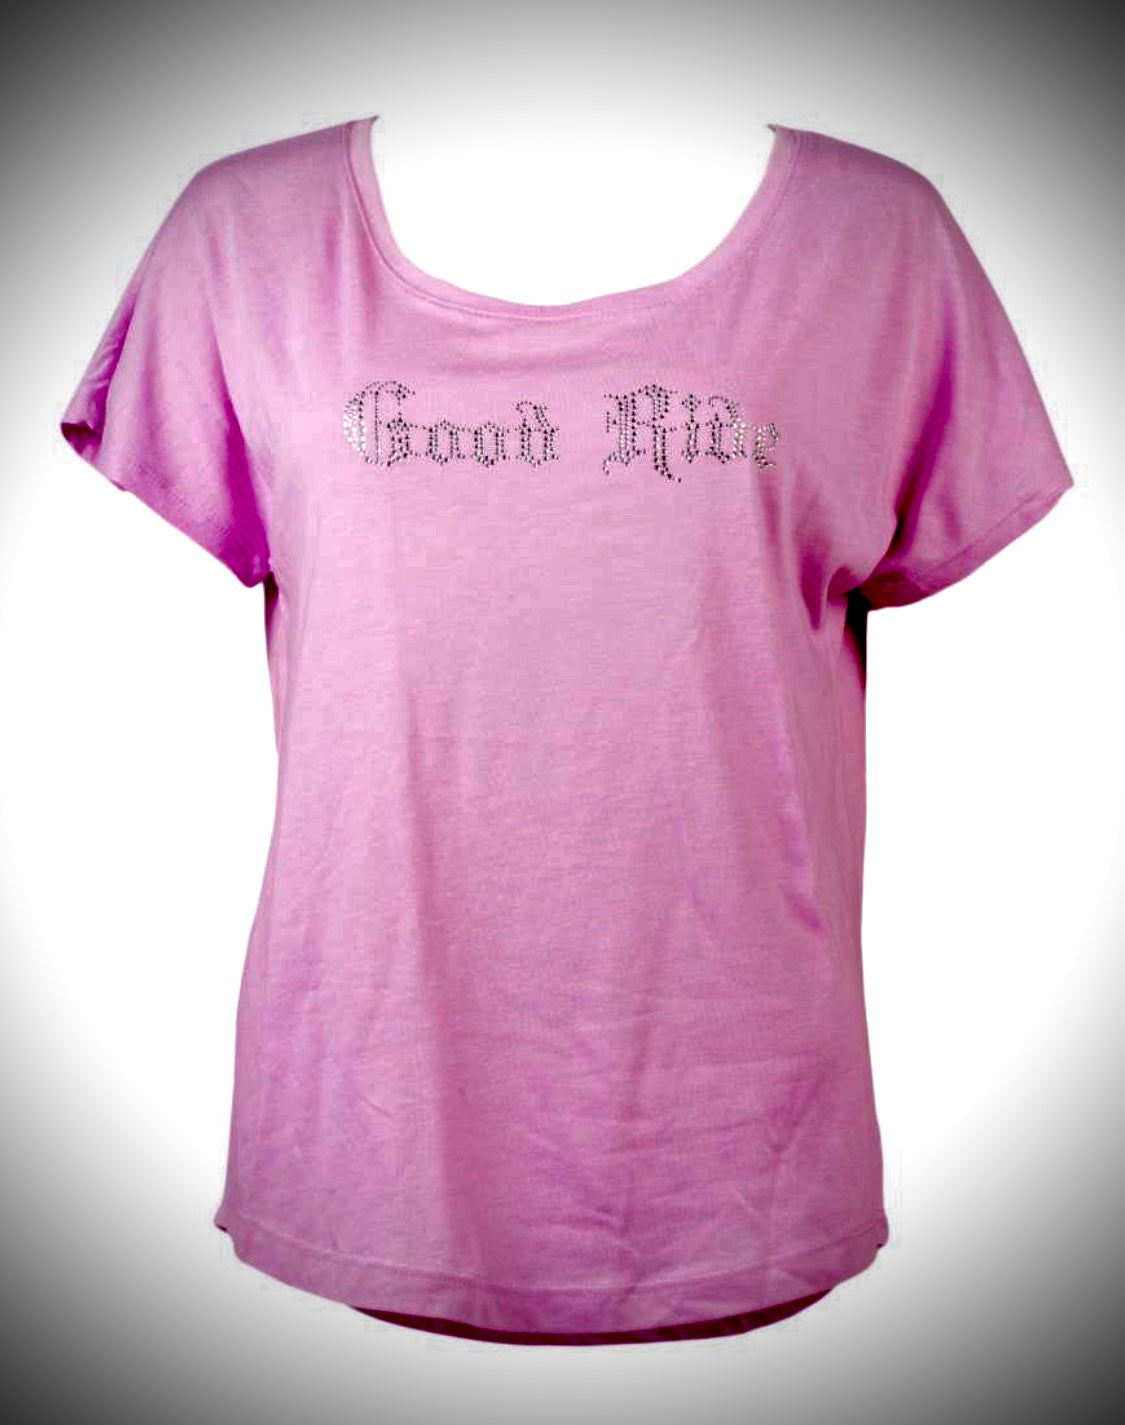 Women's Pink Crystal Tee Shirt w/GR